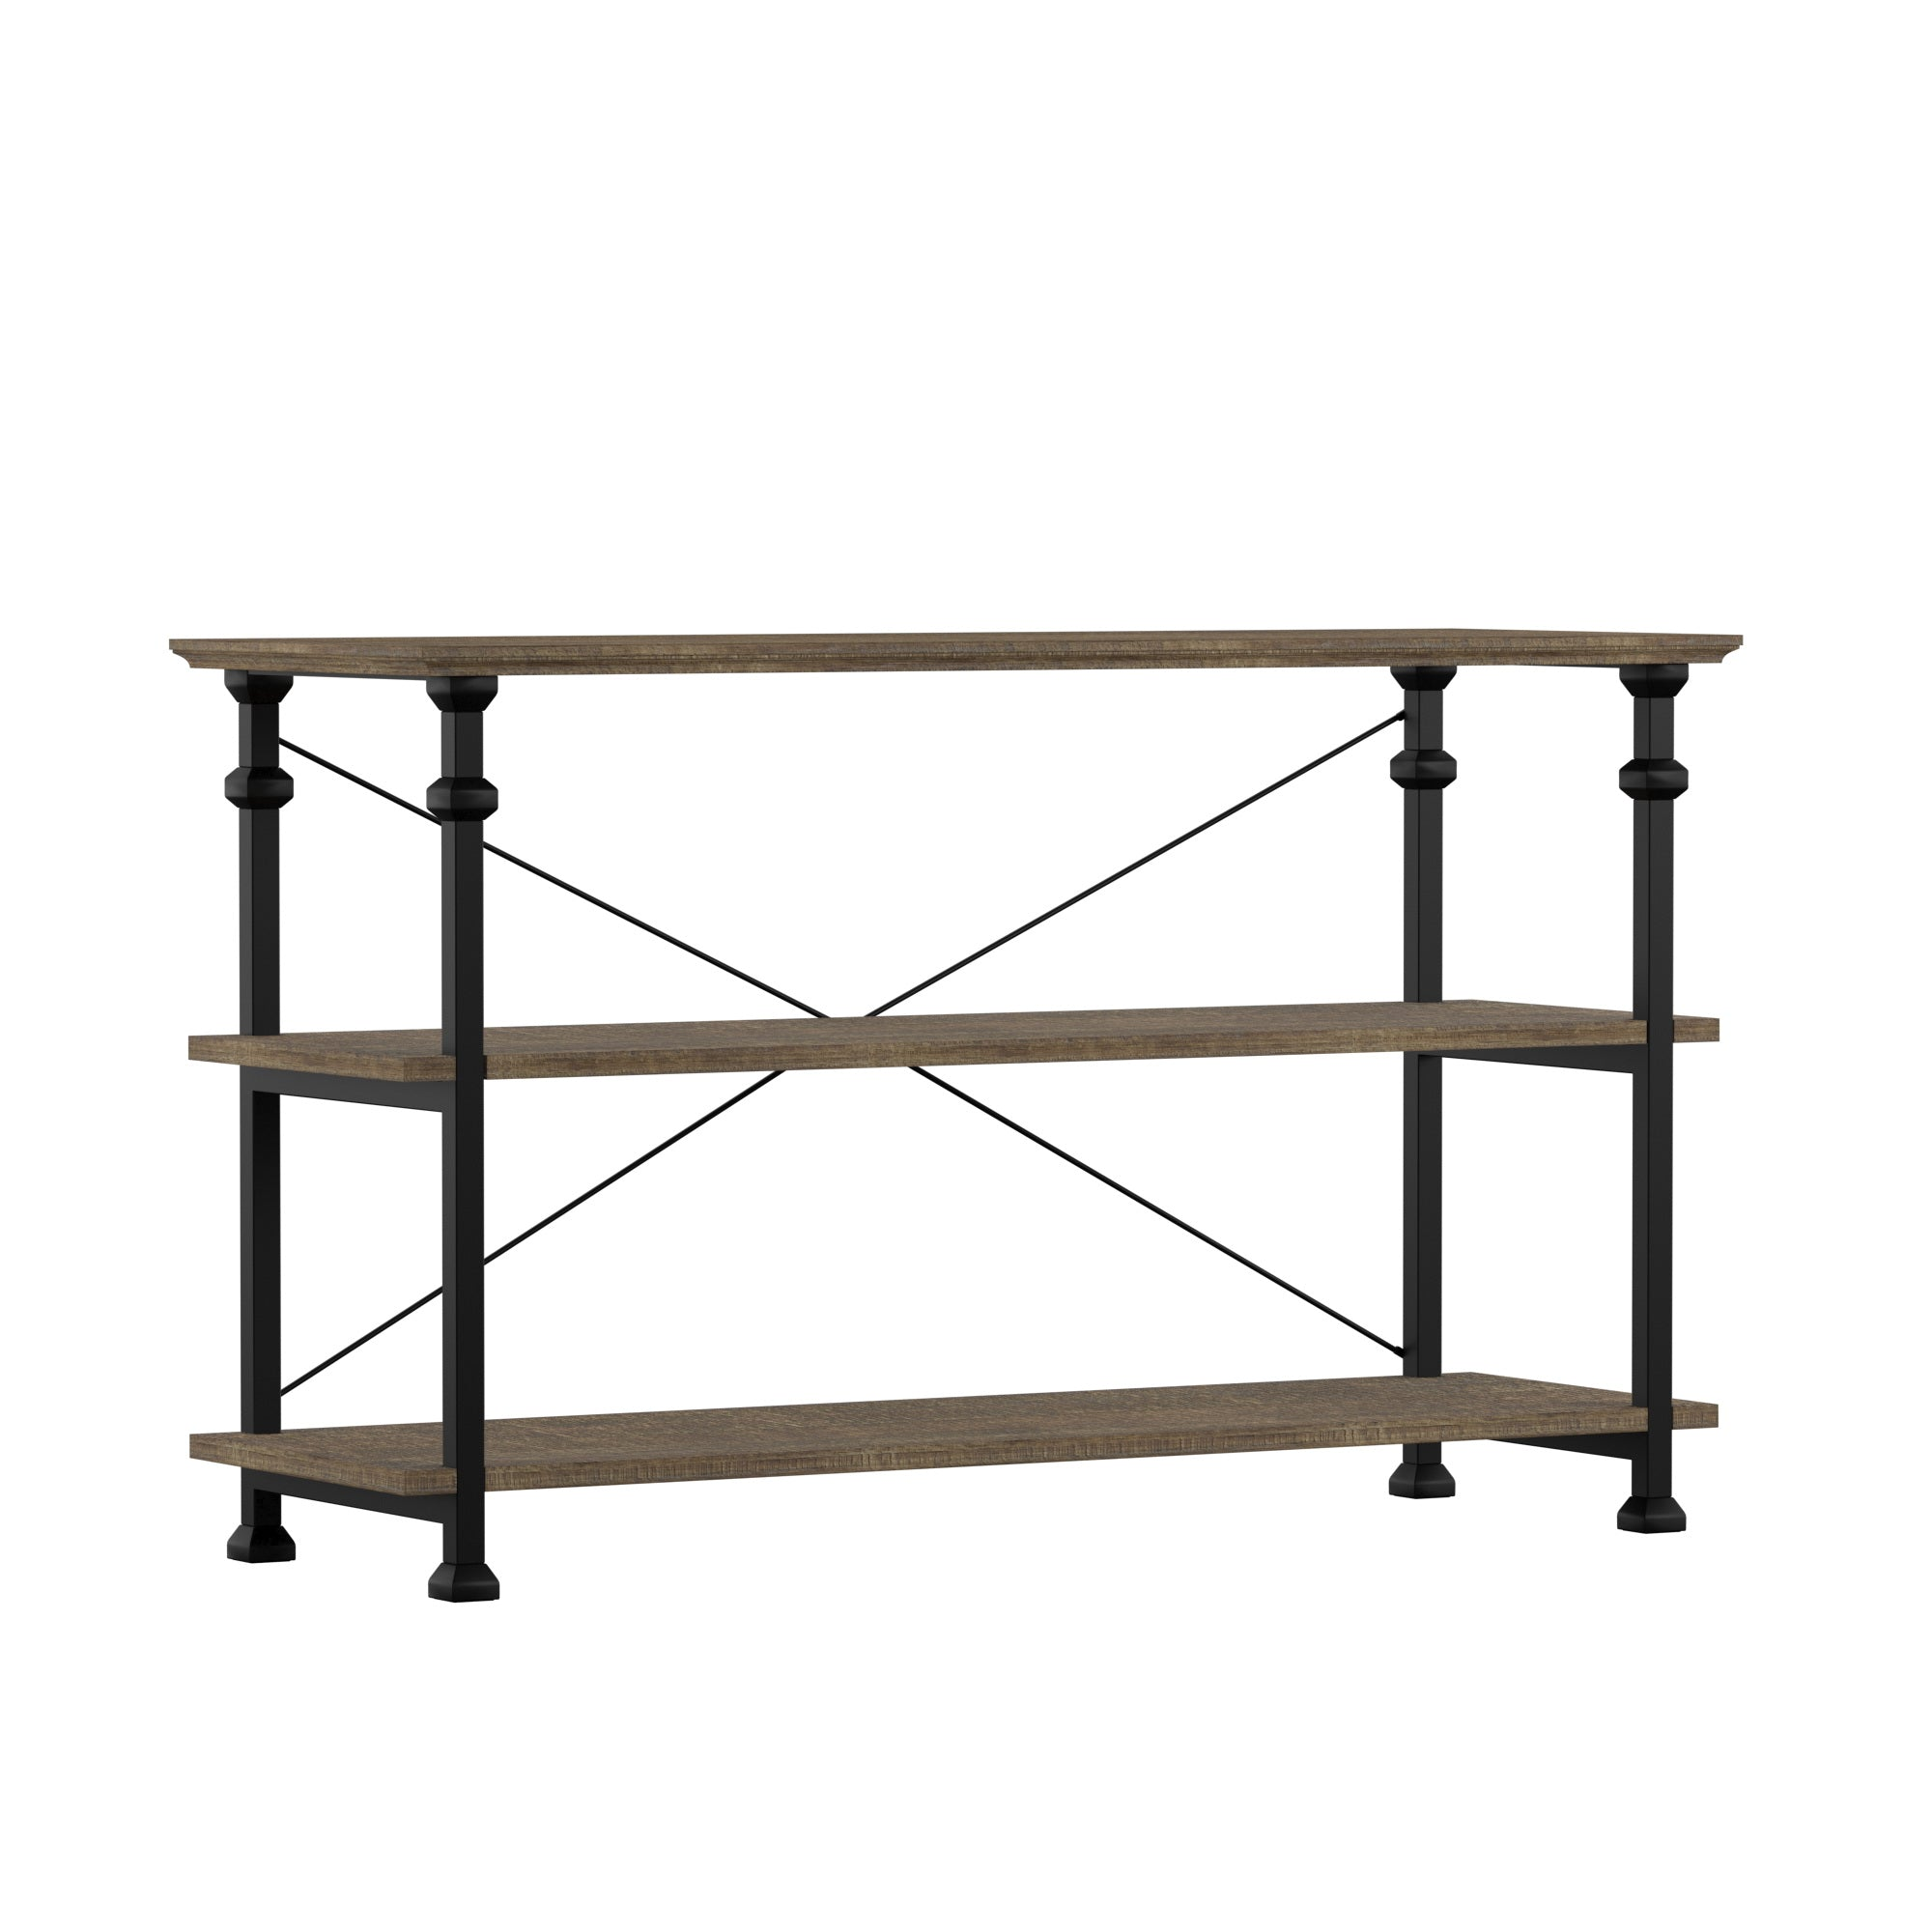 Vintage Industrial TV Stand - Brown Finish